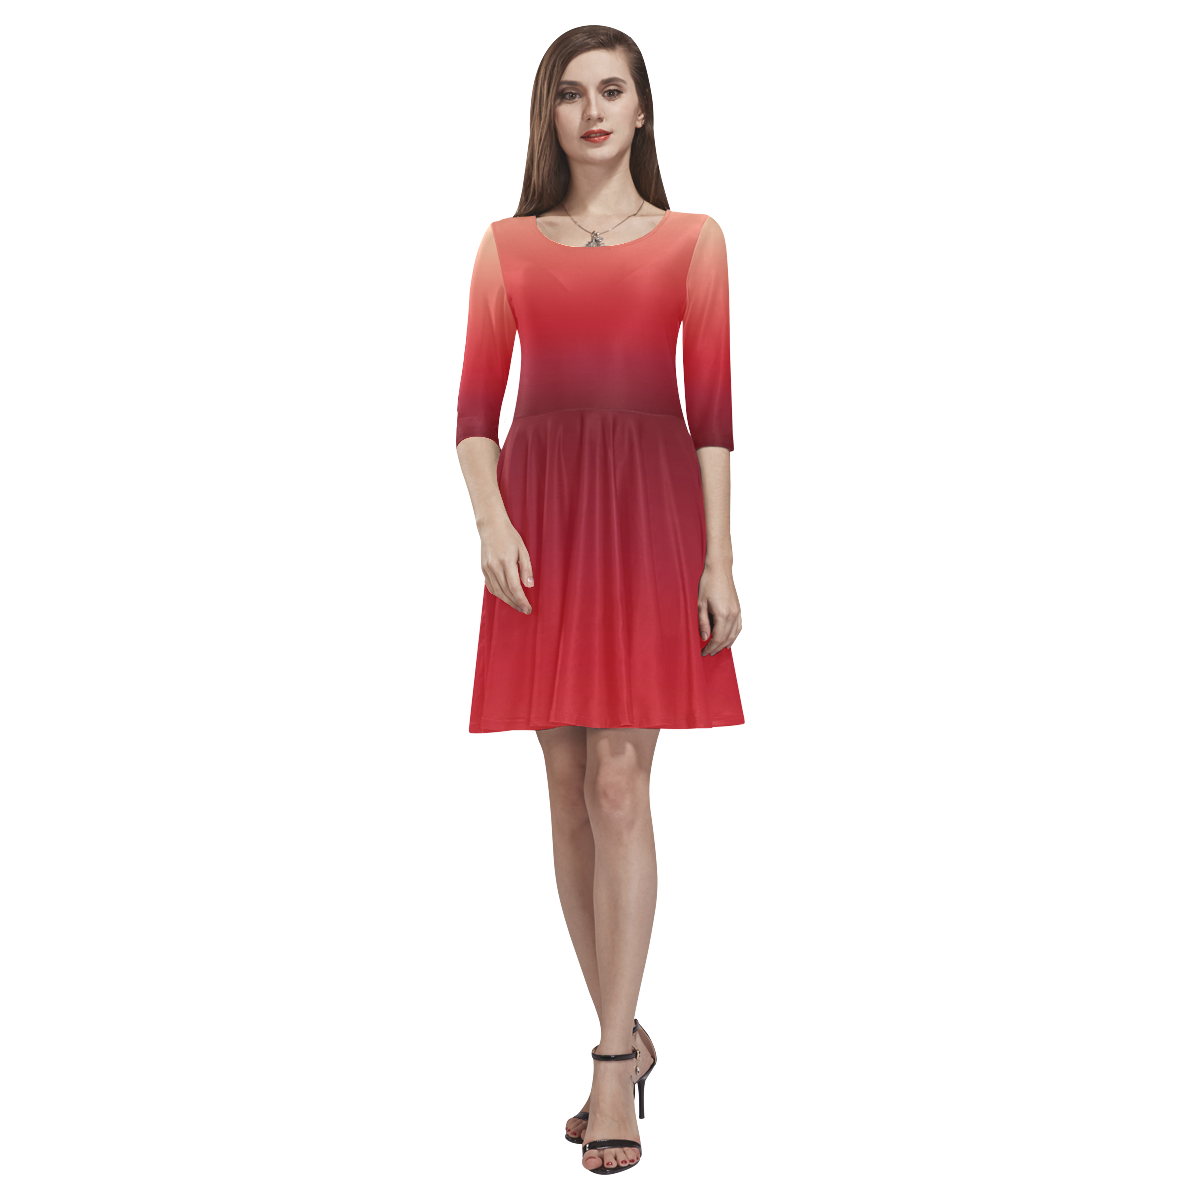 Red Ombre Gradient Tethys Half-Sleeve Skater Dress(Model D20)